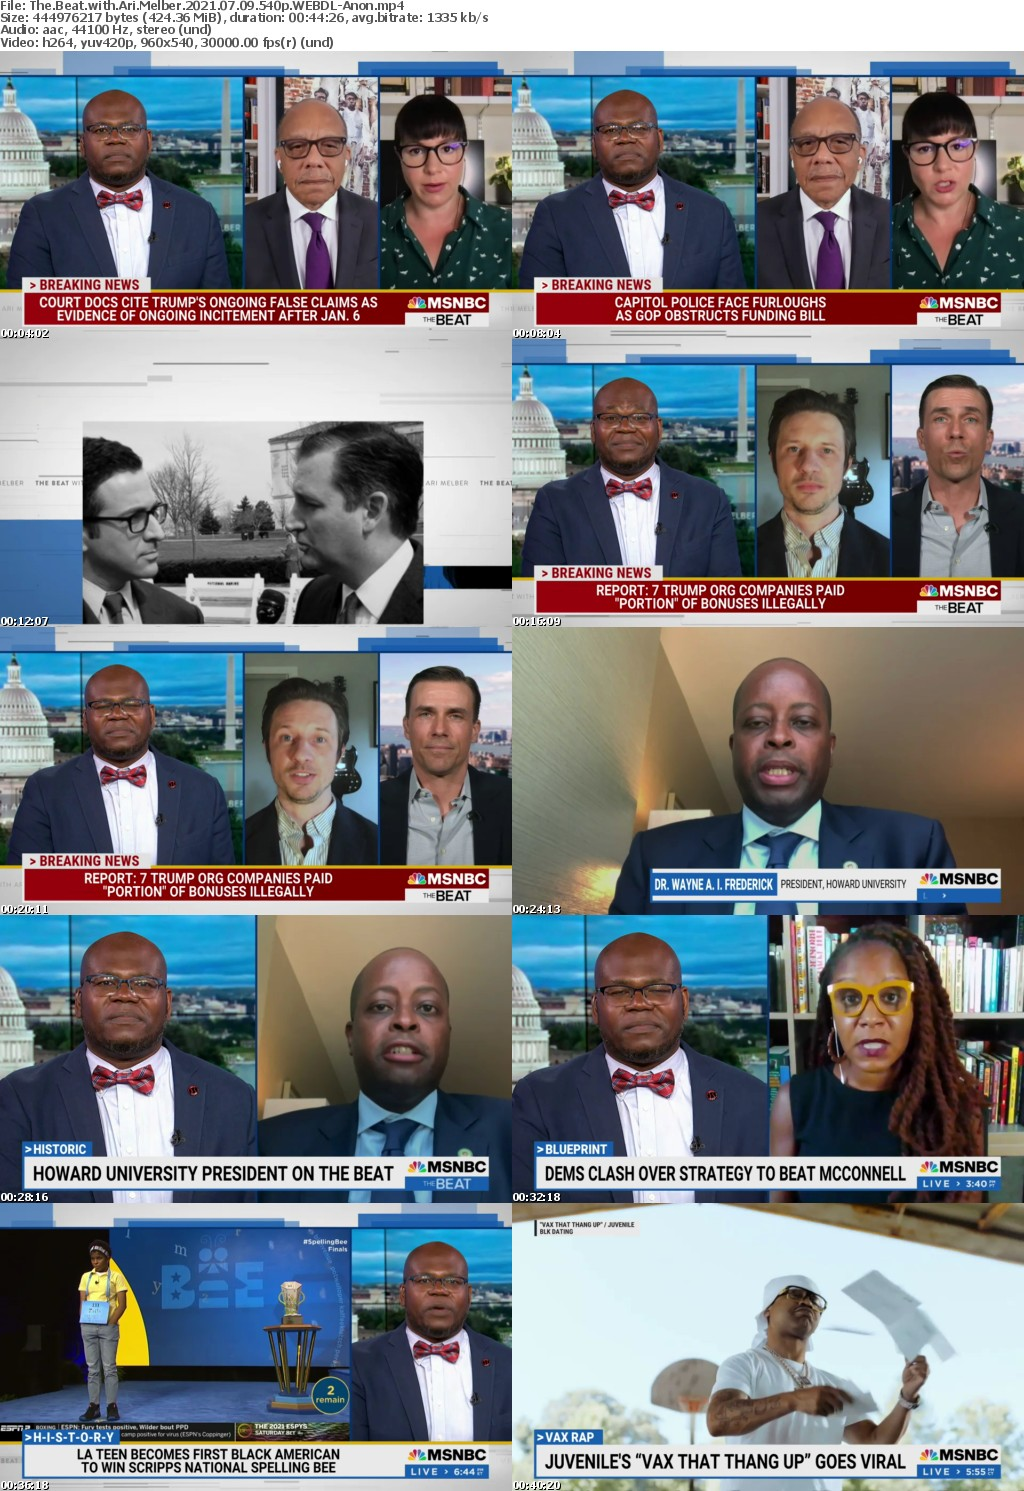 The Beat with Ari Melber 2021 07 09 540p WEBDL-Anon